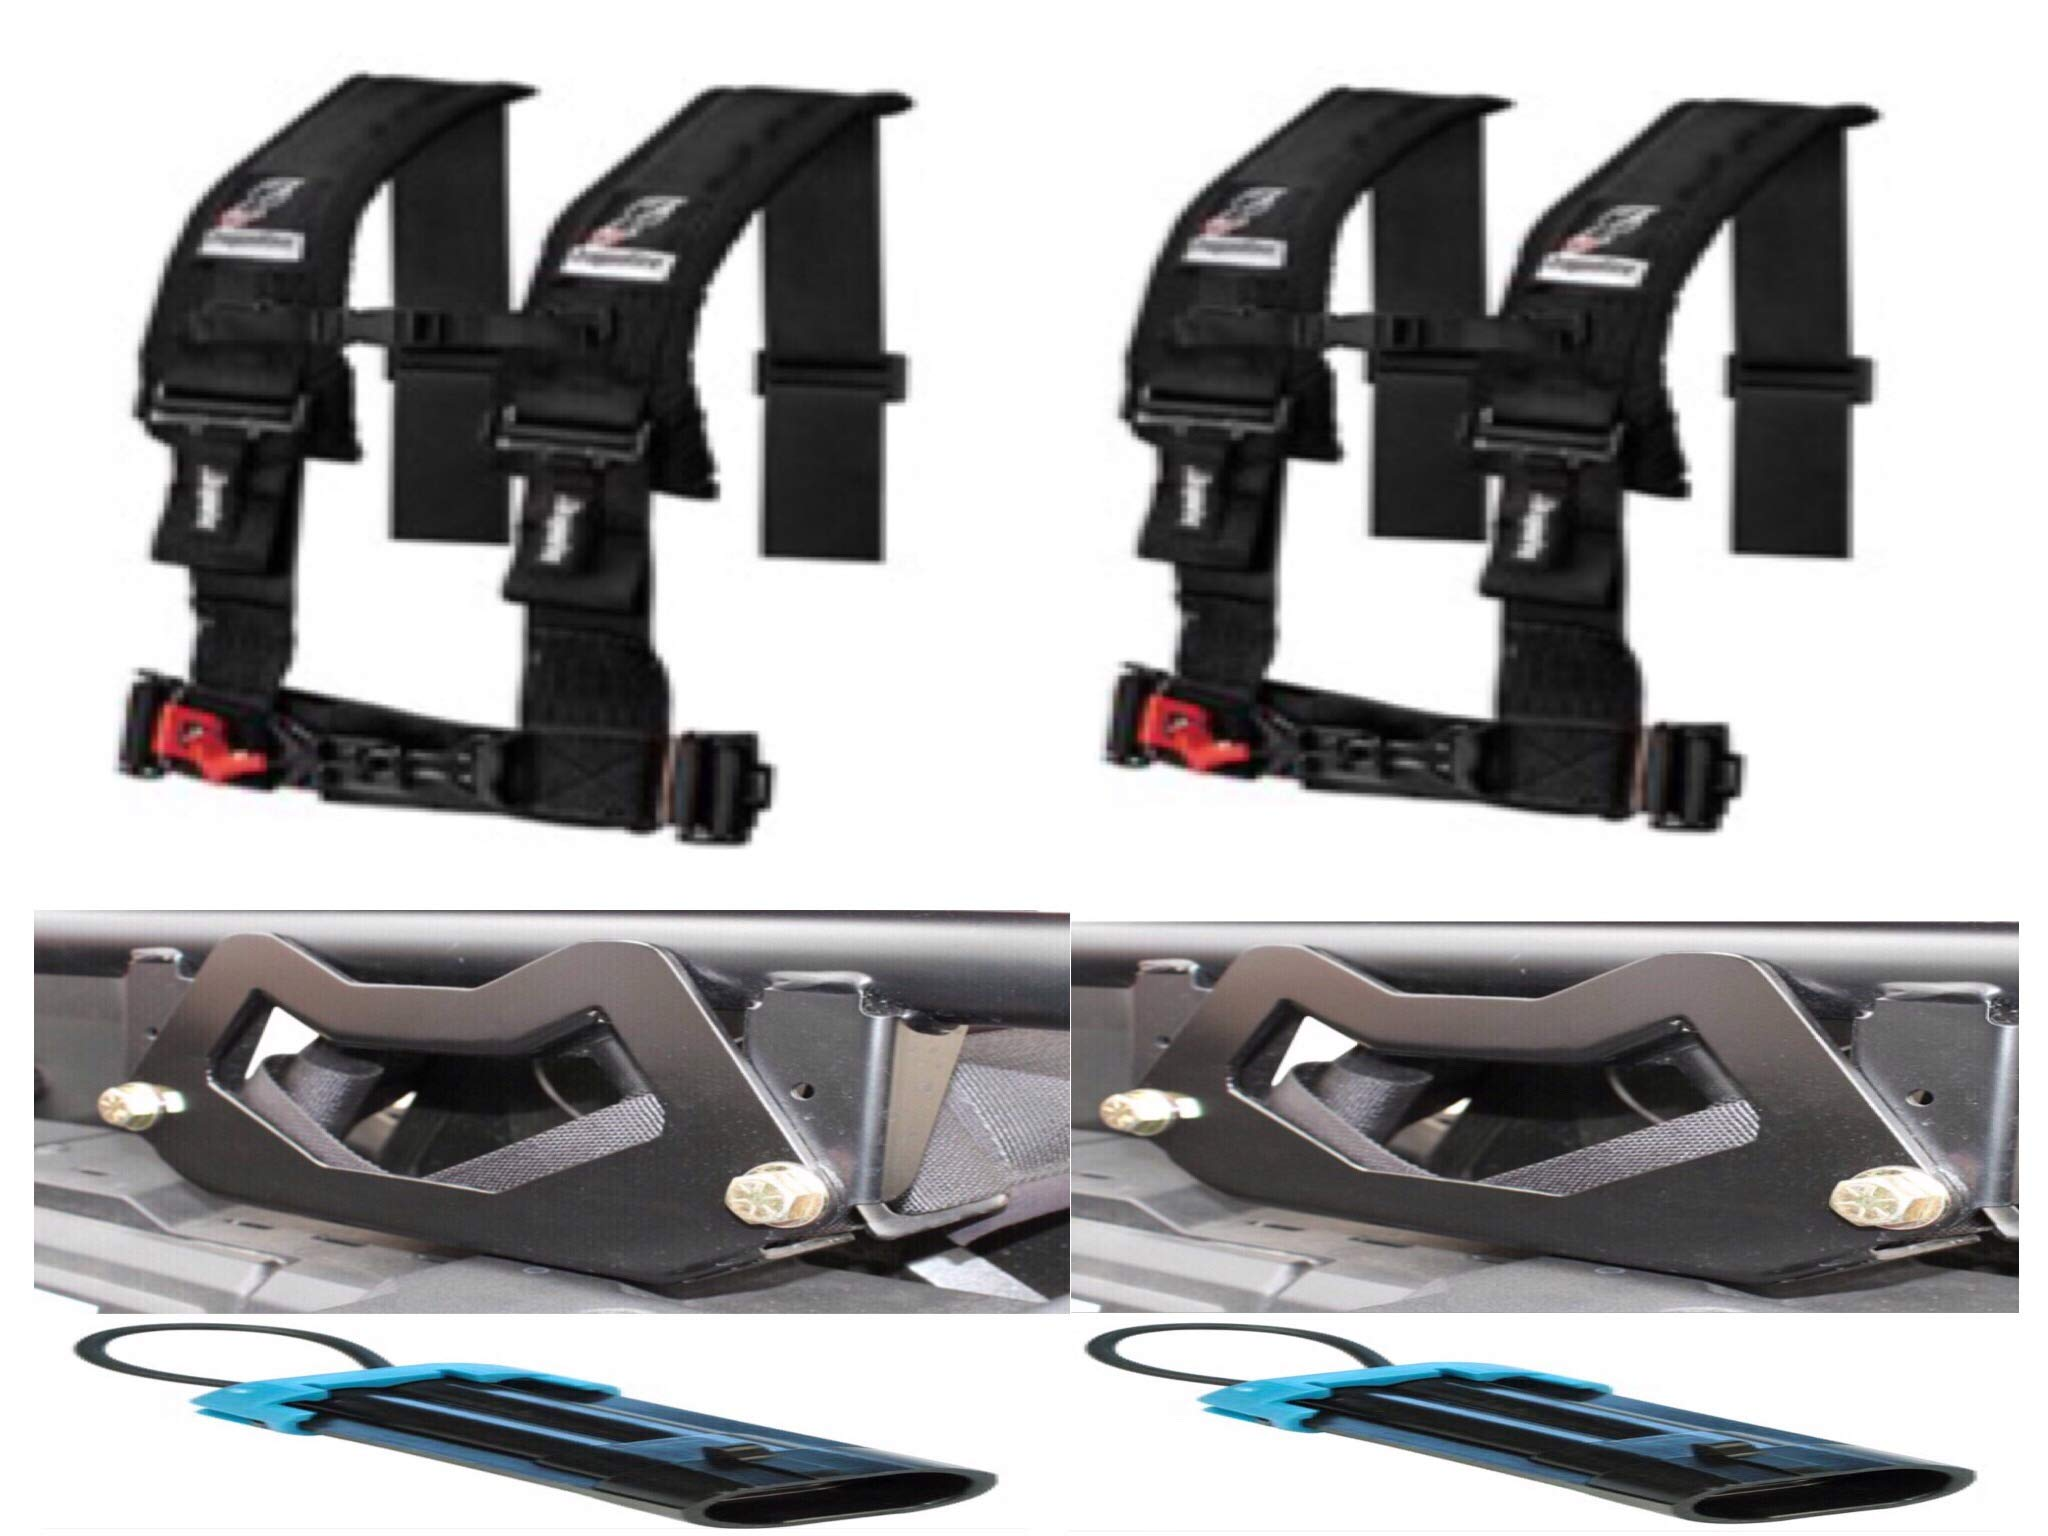 Polaris XP 1000 & 2015+ RZR 900 Set of 2 Dragonfire Racing 4-Point 3'' H-Style Harness With Sternum Clip (3'') (Black) W UTV Harness Mounting Brackets & Harness Overide Clips